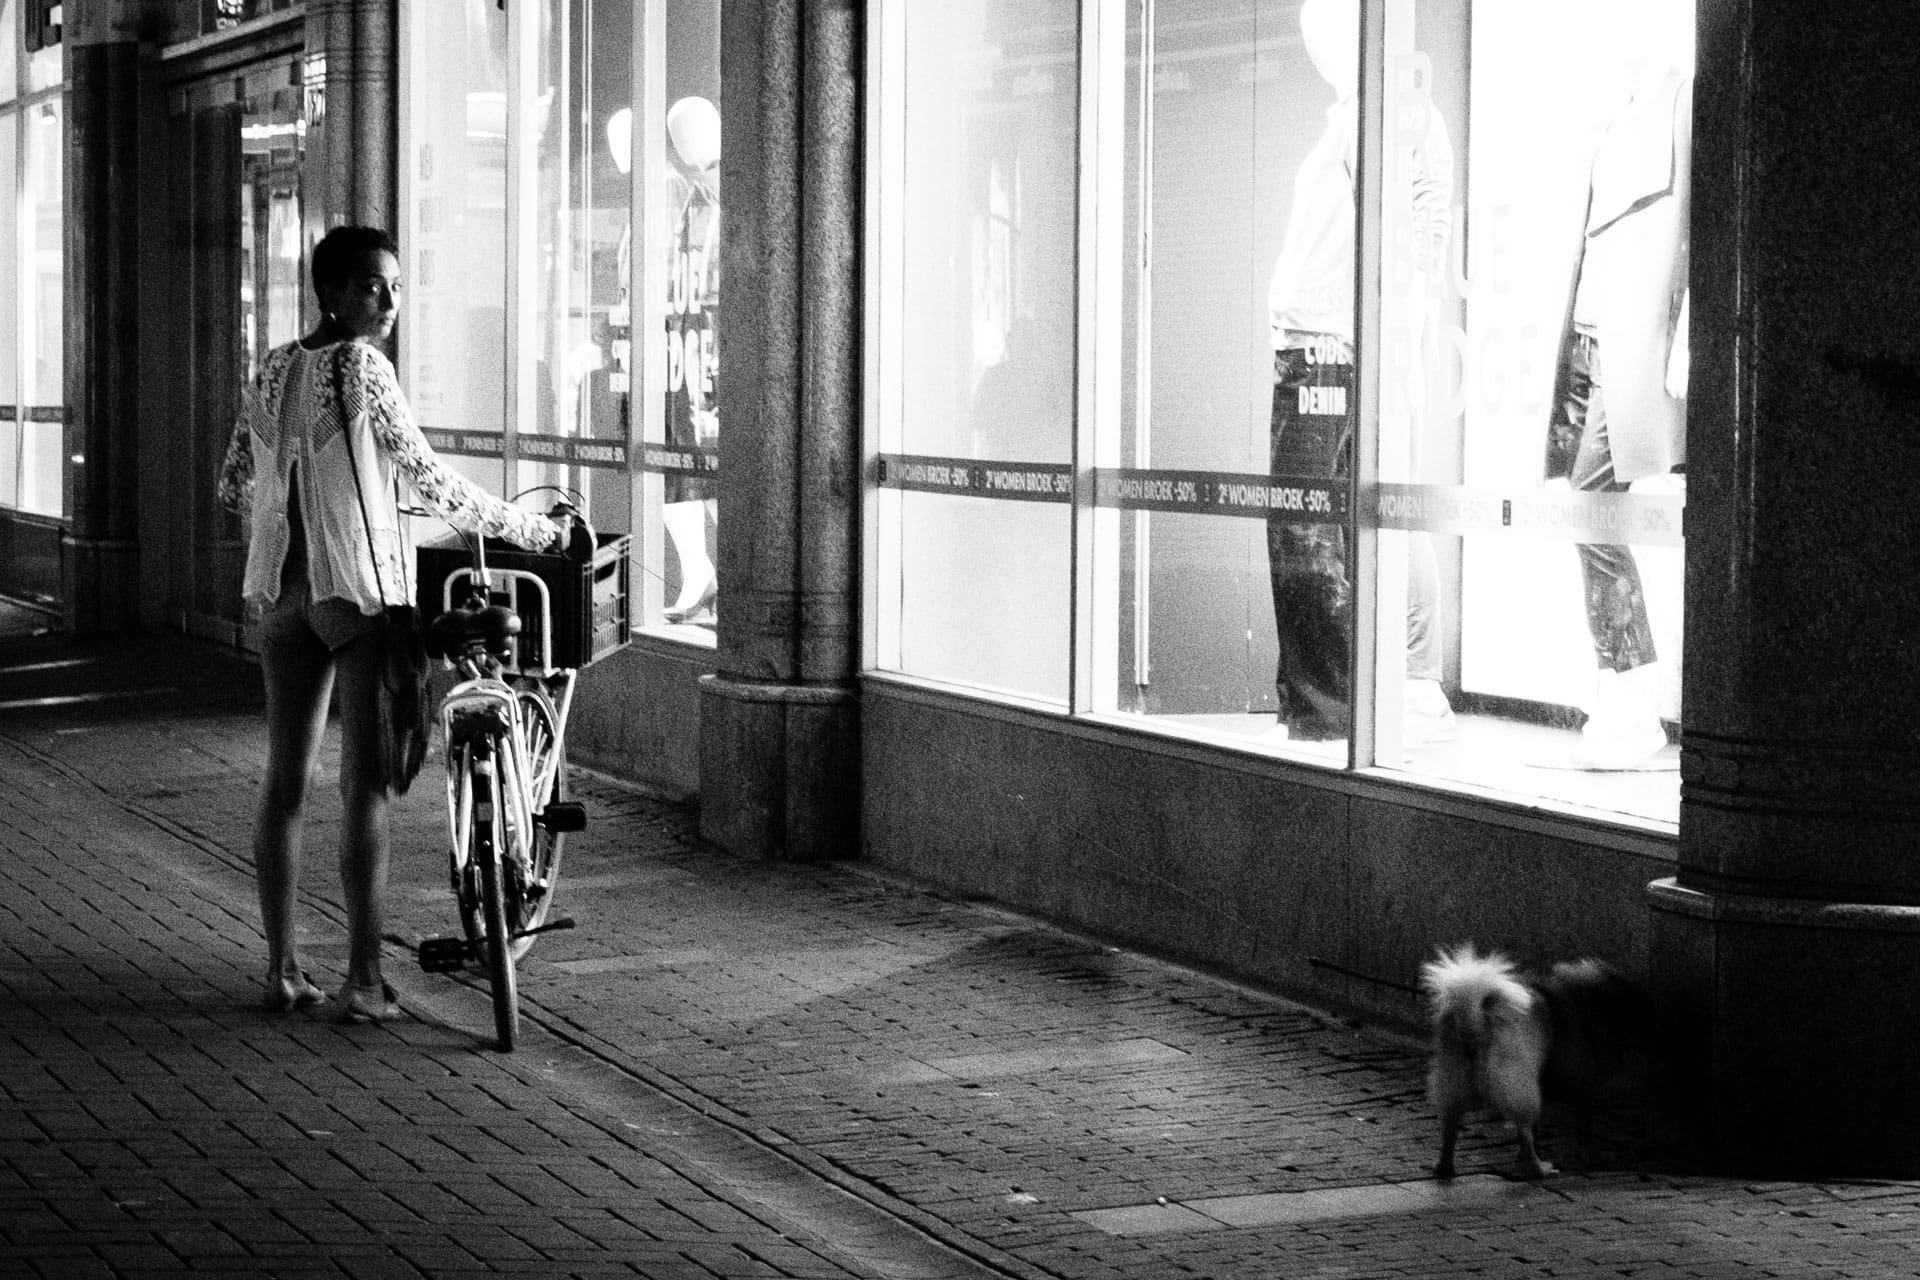 Women with bike and dog | Daily Observations Street Photography and Social Documentary